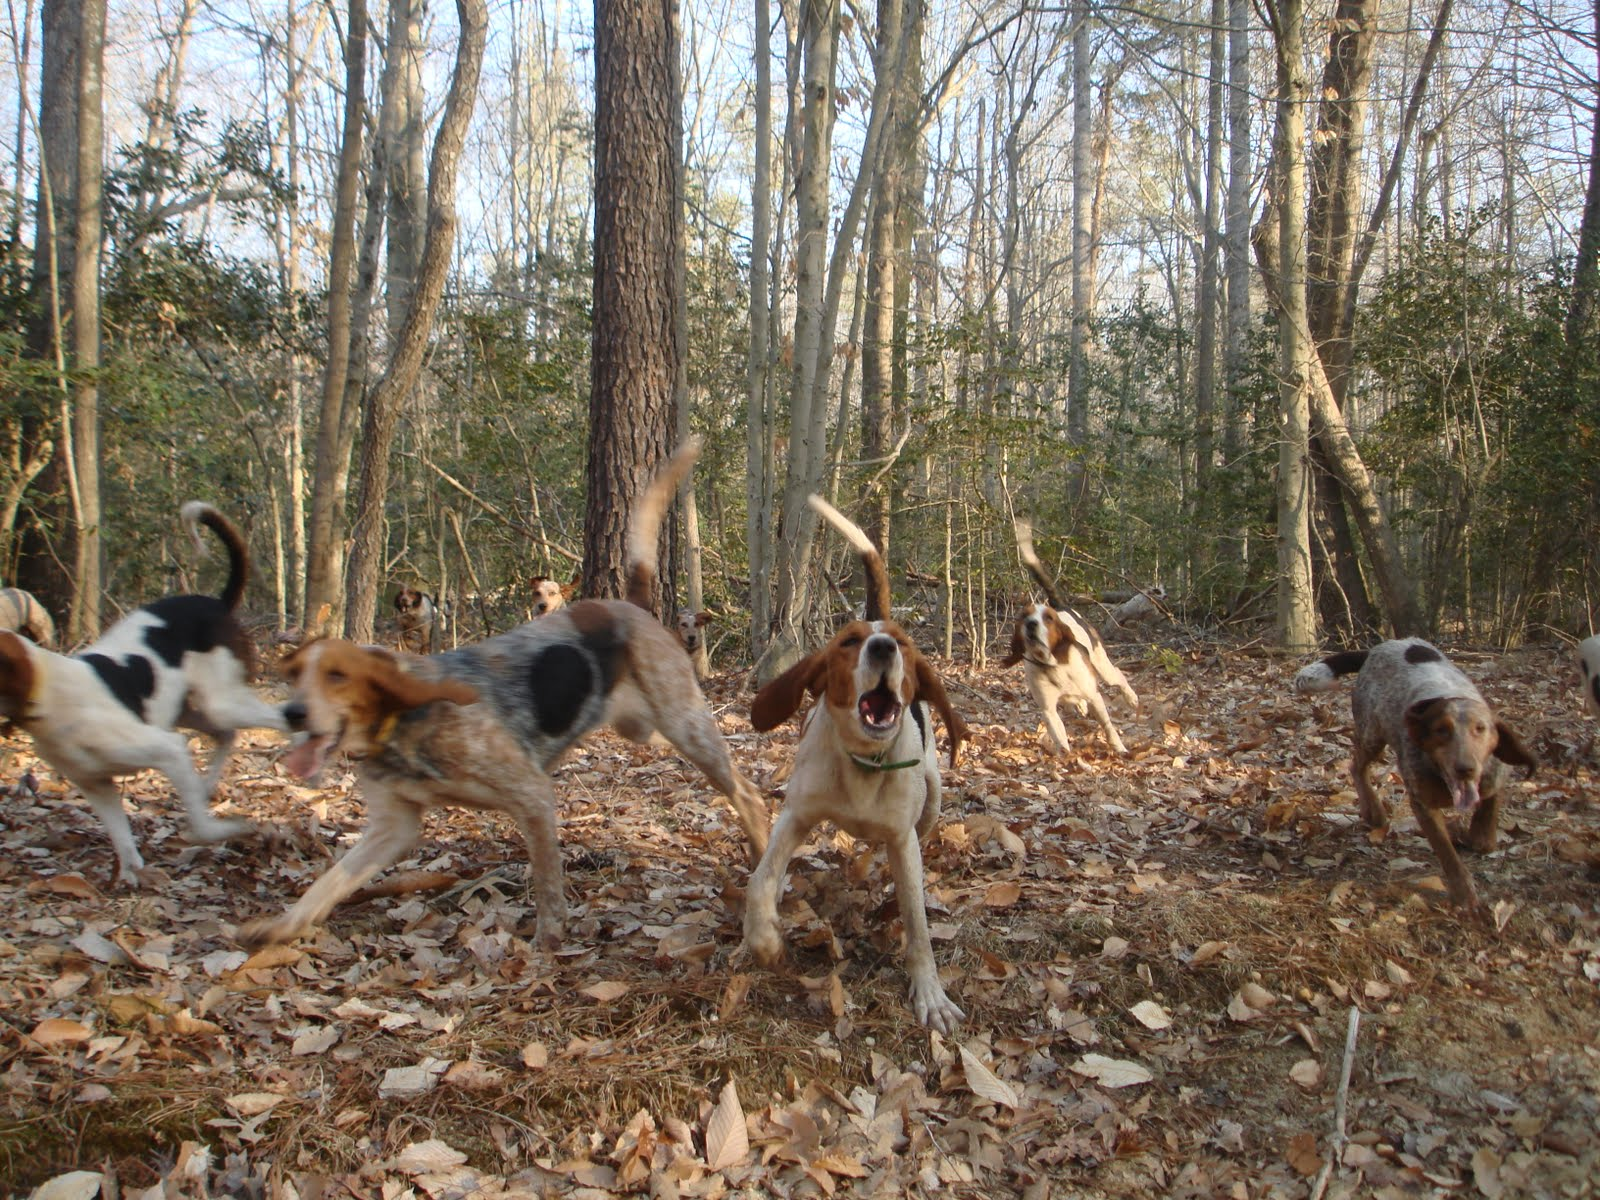 Deer Hunting with Dogs